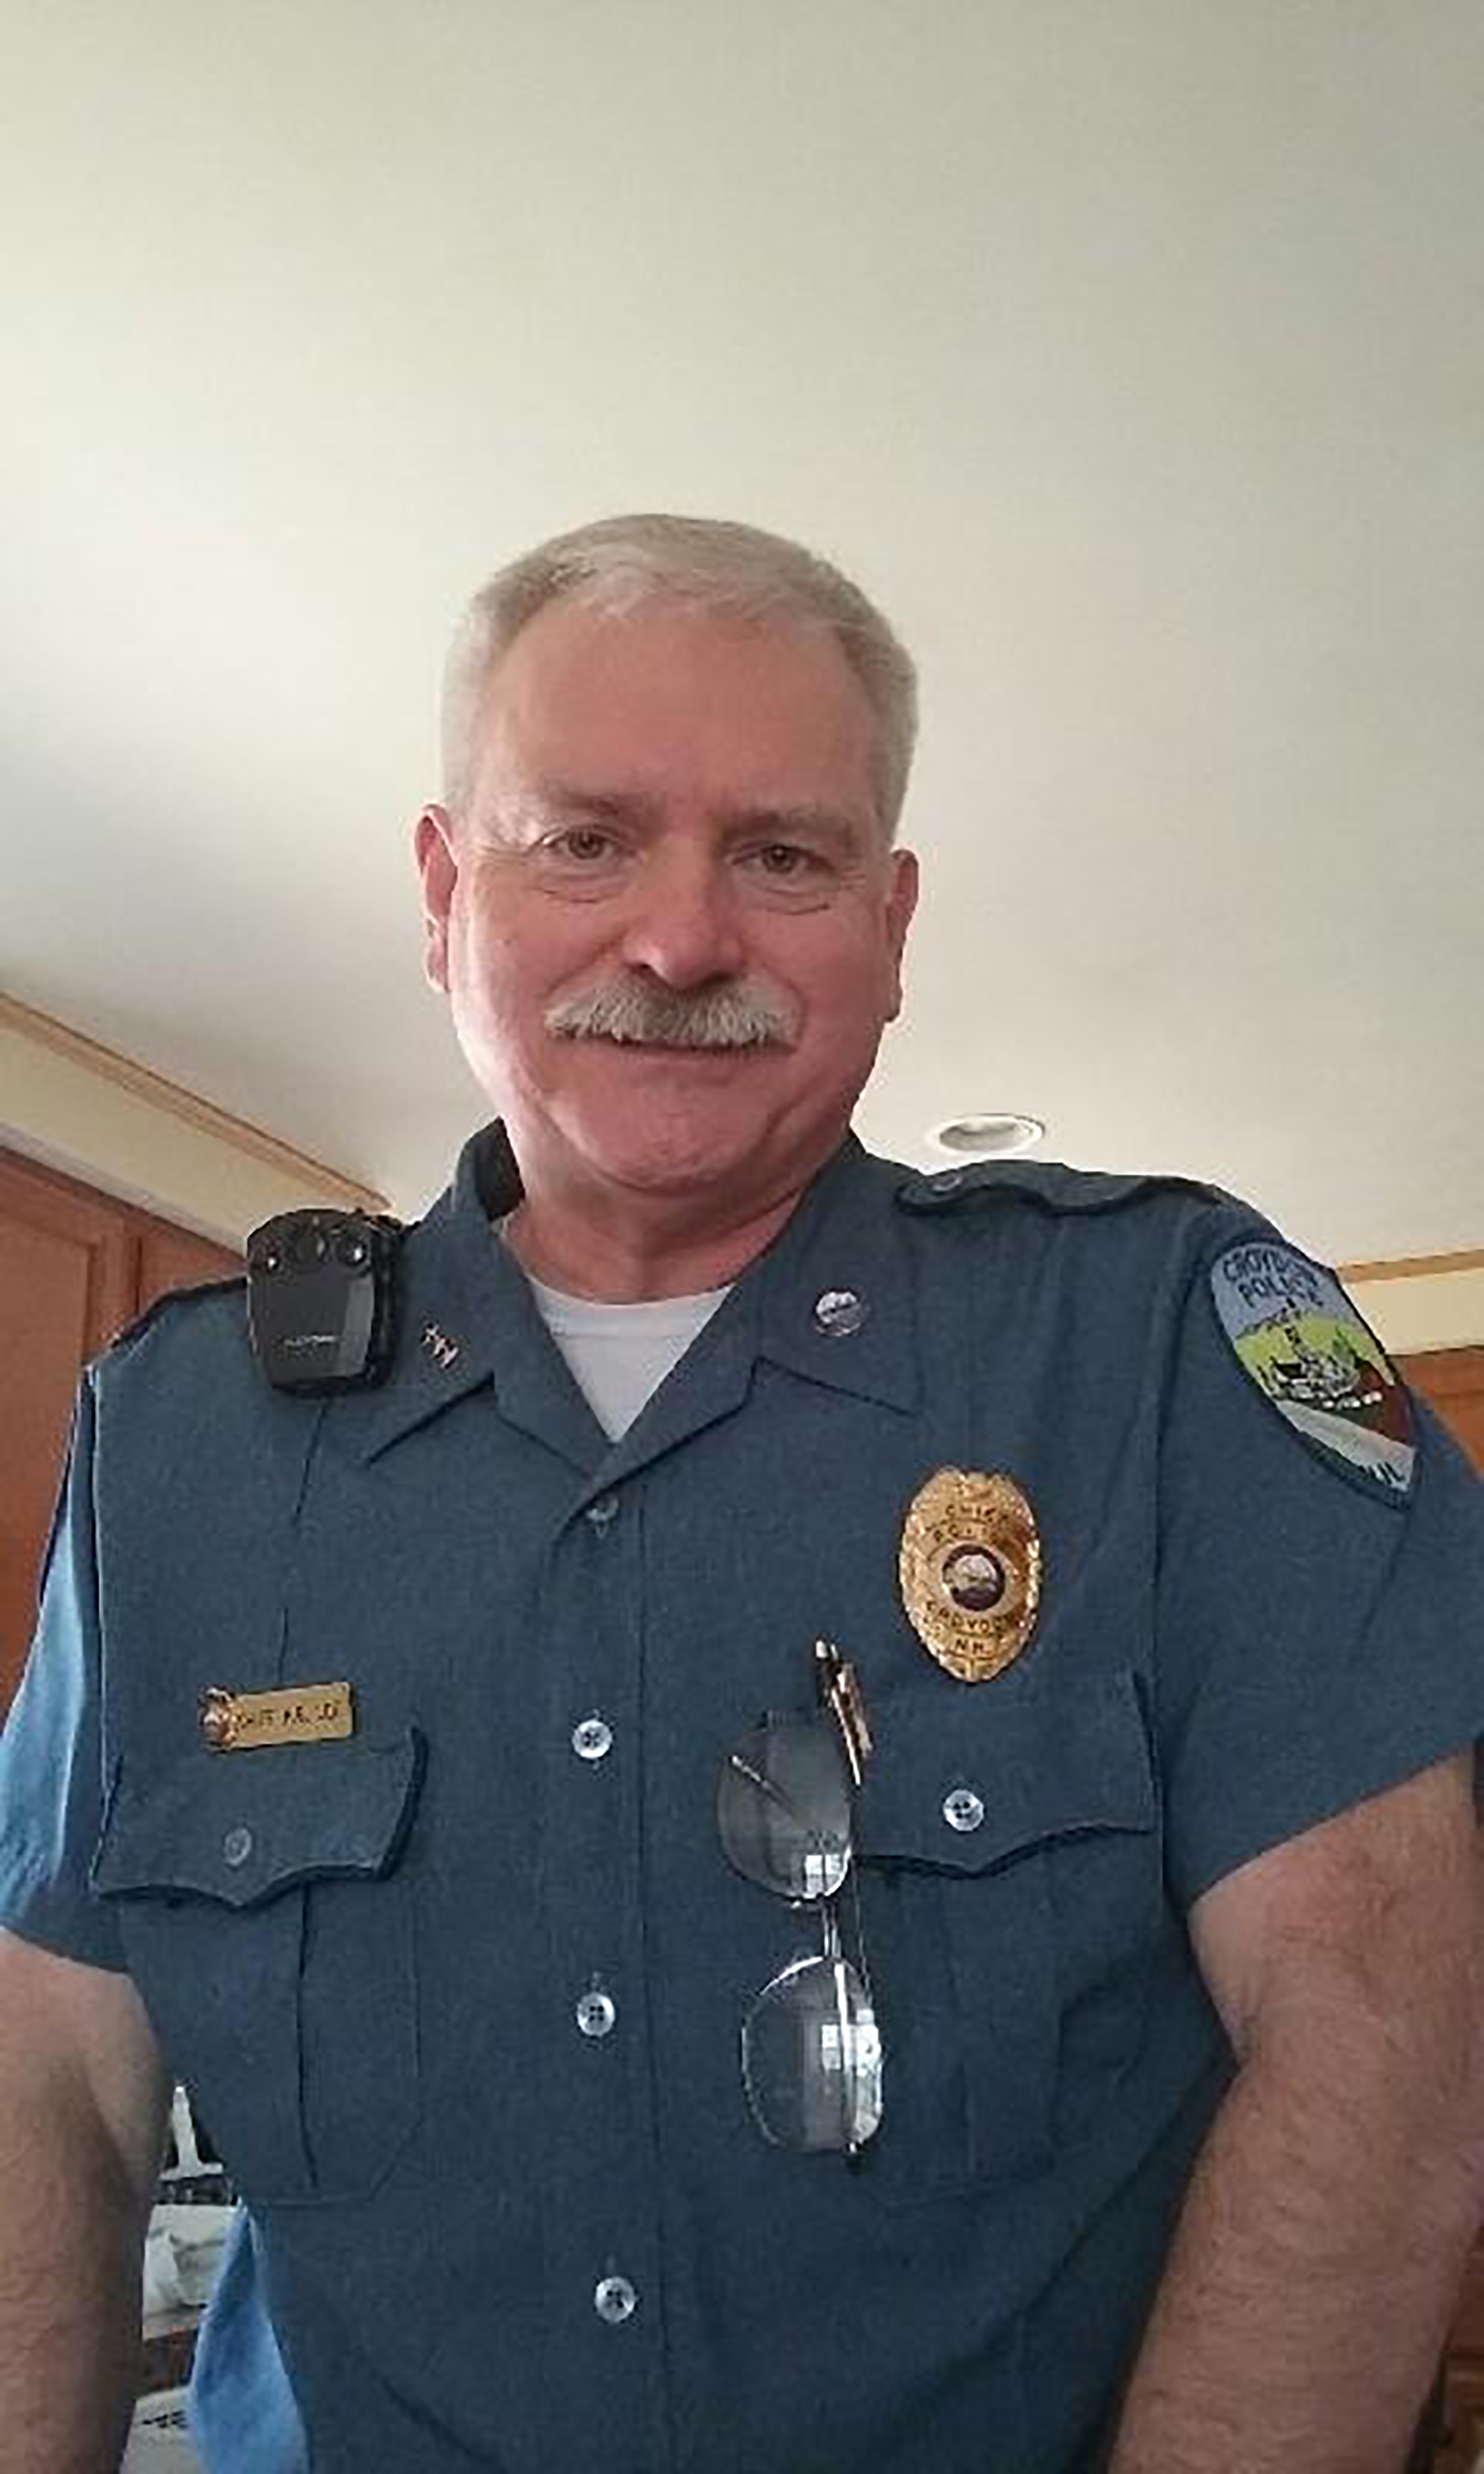 A one-man police department was disbanded. The chief left the town meeting in his underwear